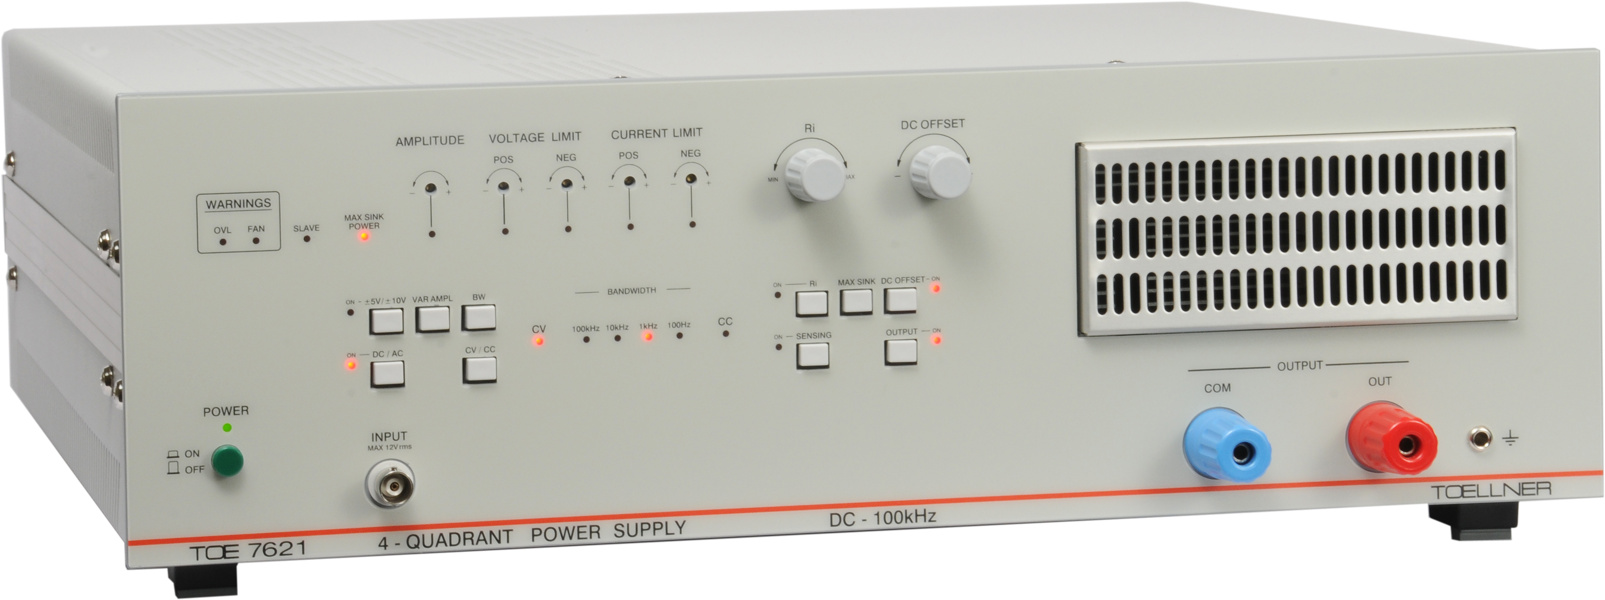 Toellner TOE 7621 Series of 4-Quadrant Power Supplies, 320 W source + sink, DC...100 kHz / 400 kHz